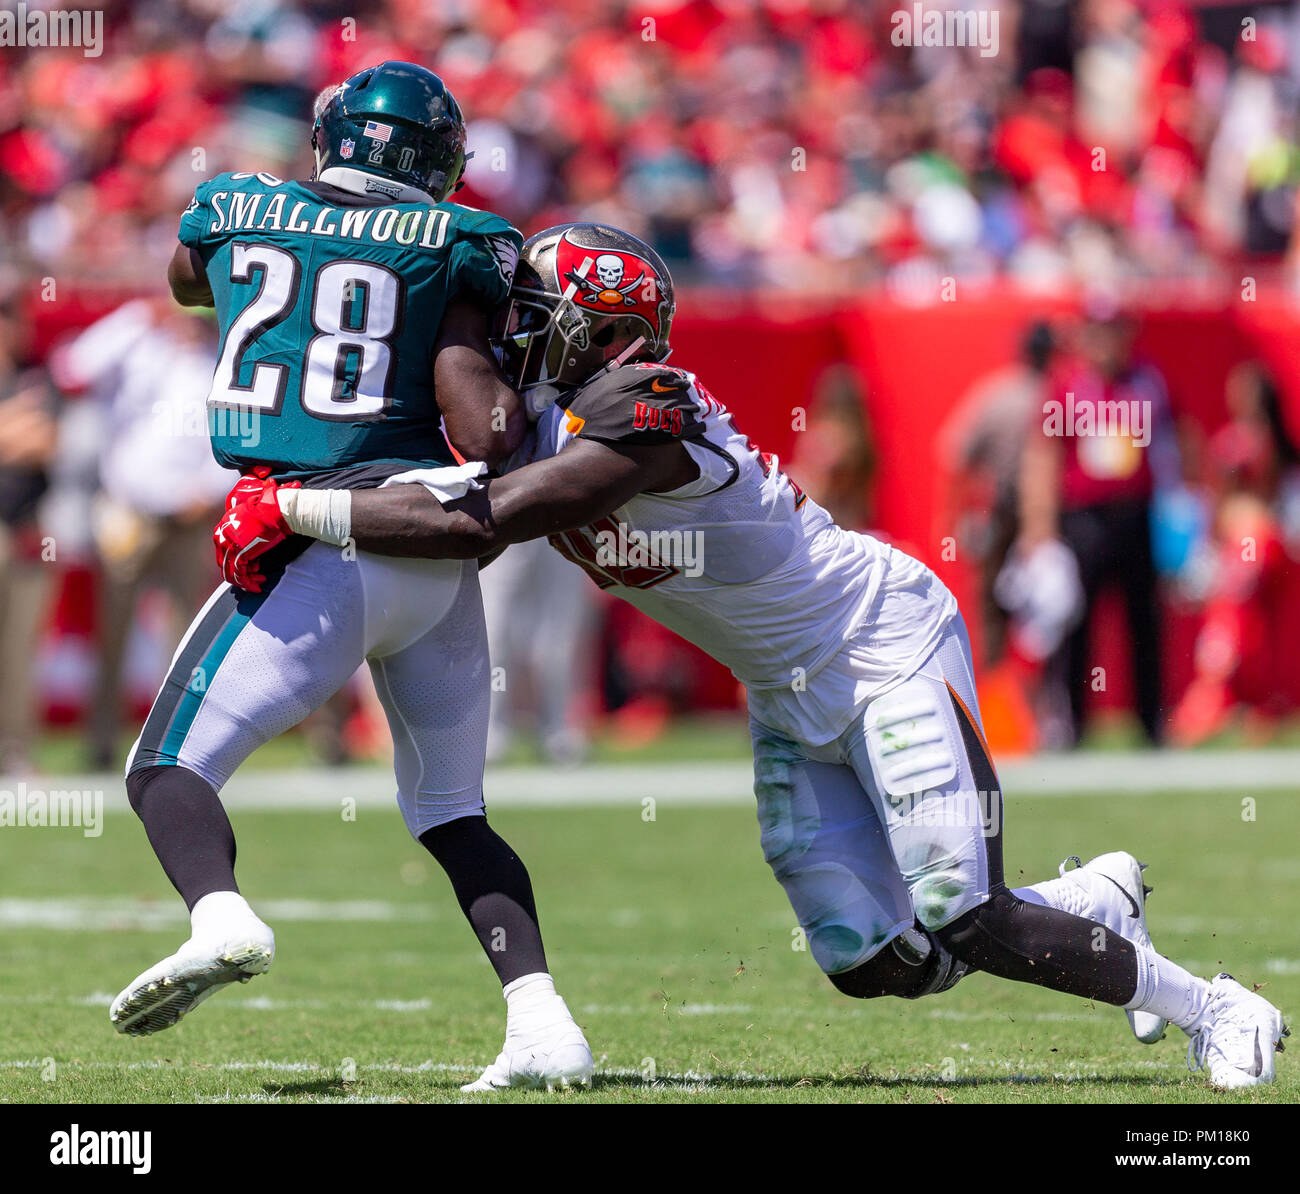 Tampa, Florida, USA. 16th Sep, 2018. Tampa Bay Buccaneers defensive end Jason Pierre-Paul (90) tackles Philadelphia Eagles running back Wendell Smallwood (28) in the 1st half during the game between the Philadelphia Eagles and the Tampa Bay Buccaneers at Raymond James Stadium in Tampa, Florida. Del Mecum/CSM/Alamy Live News - Stock Image